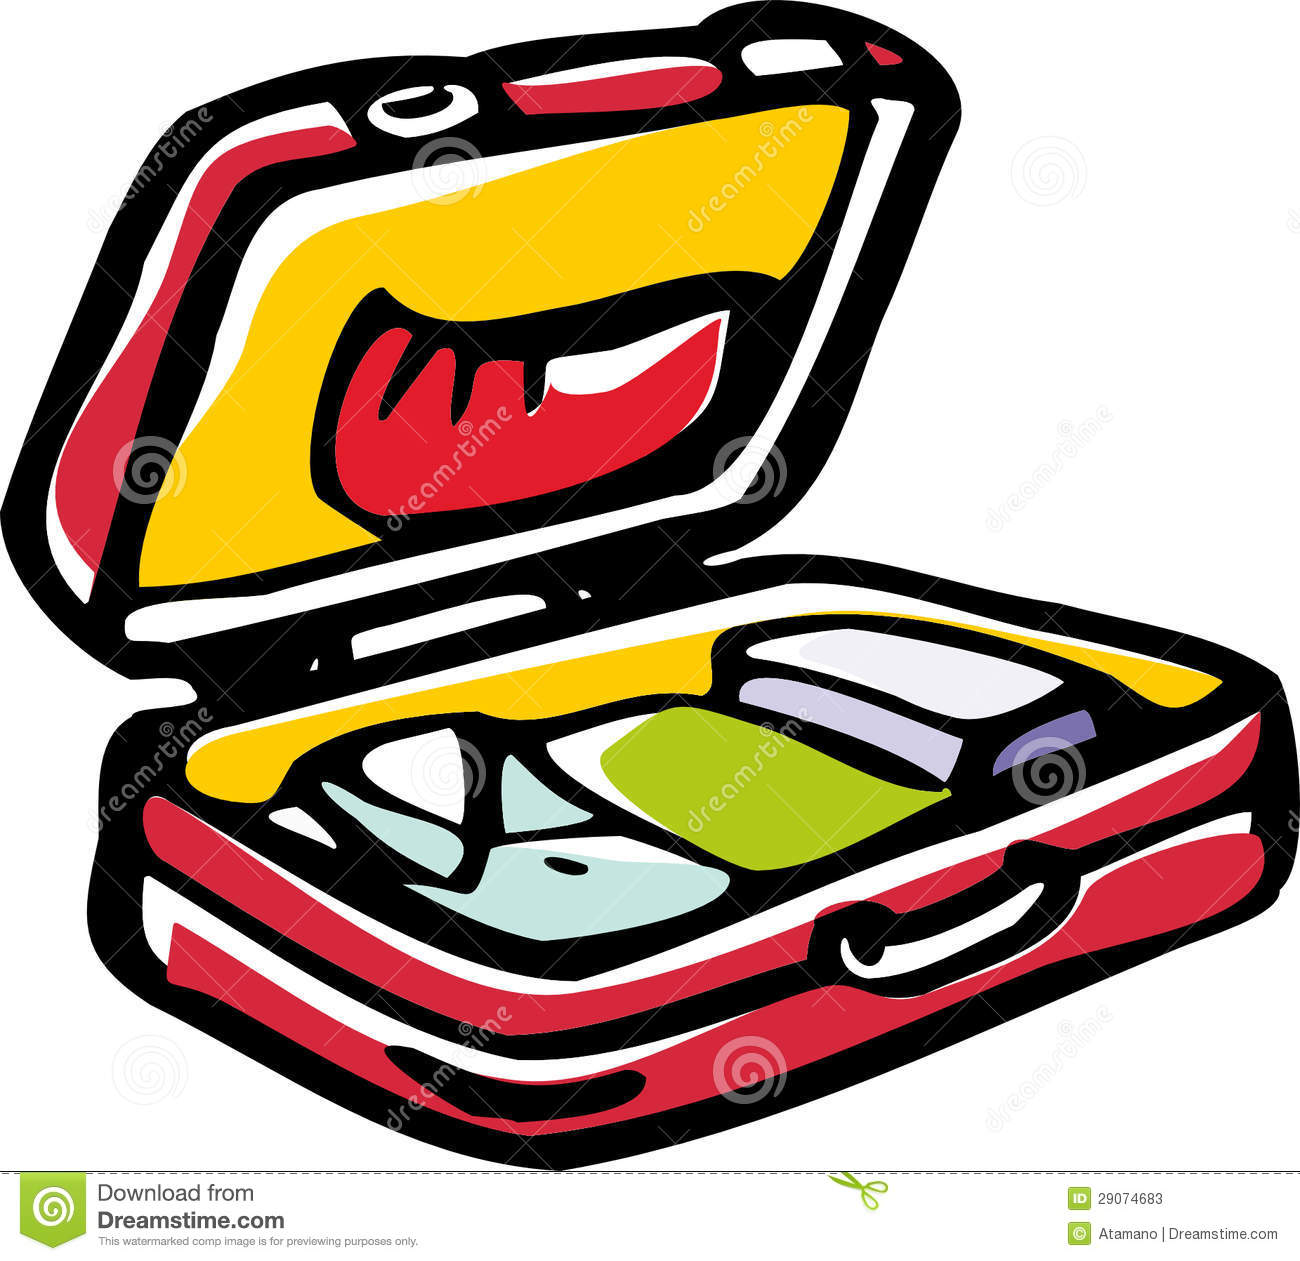 Stylized vector image of open suitcase with clothes.